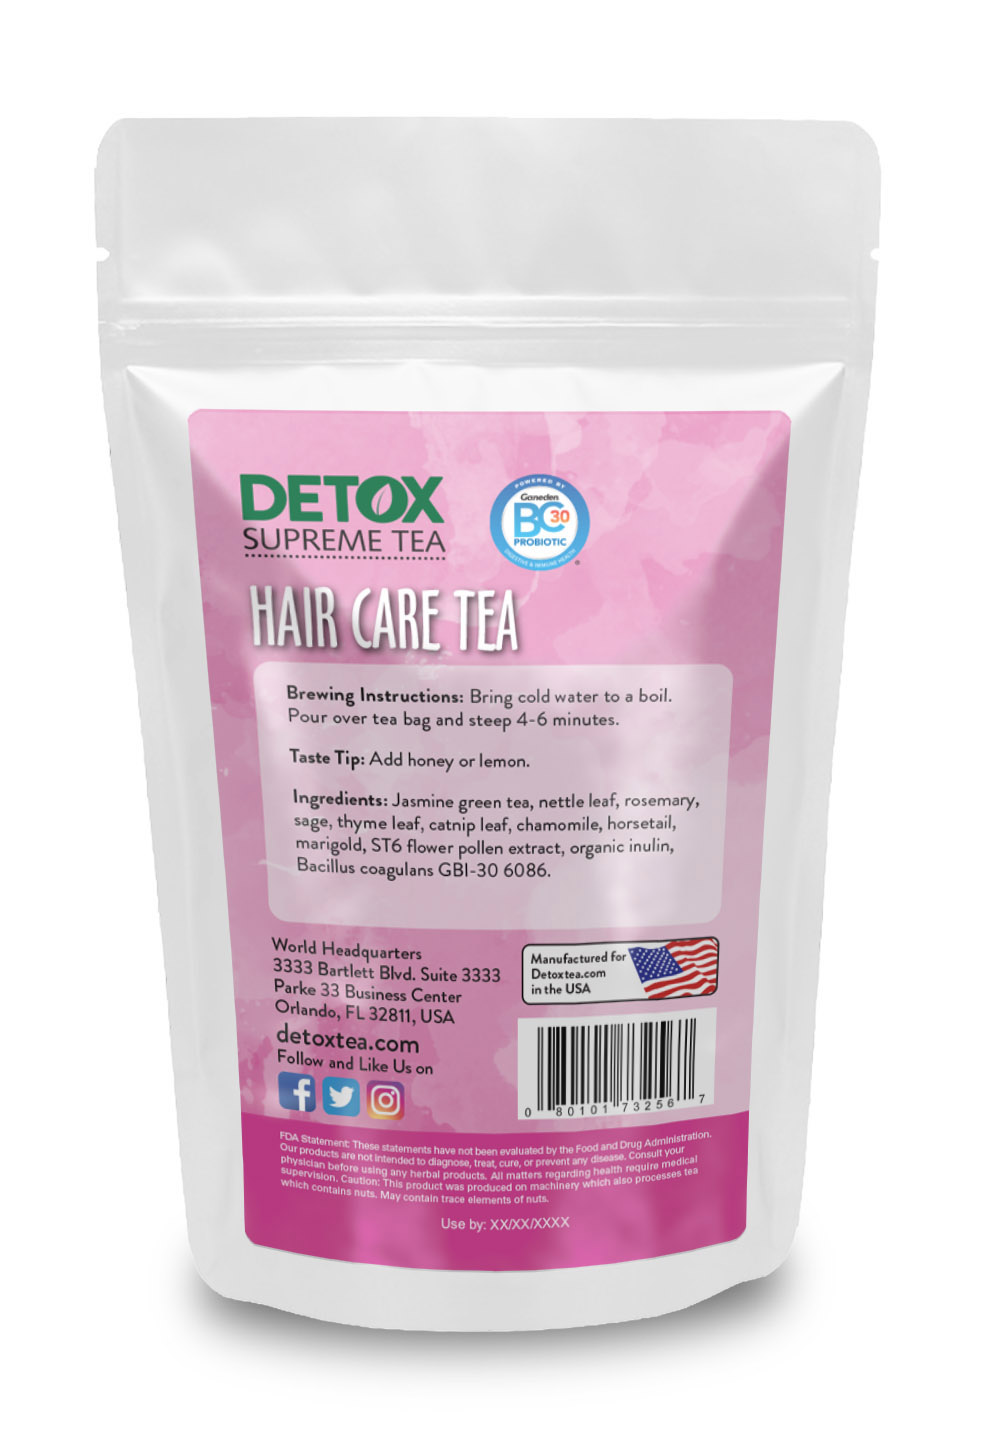 28 Day Hair Care Tea with Probiotics Back